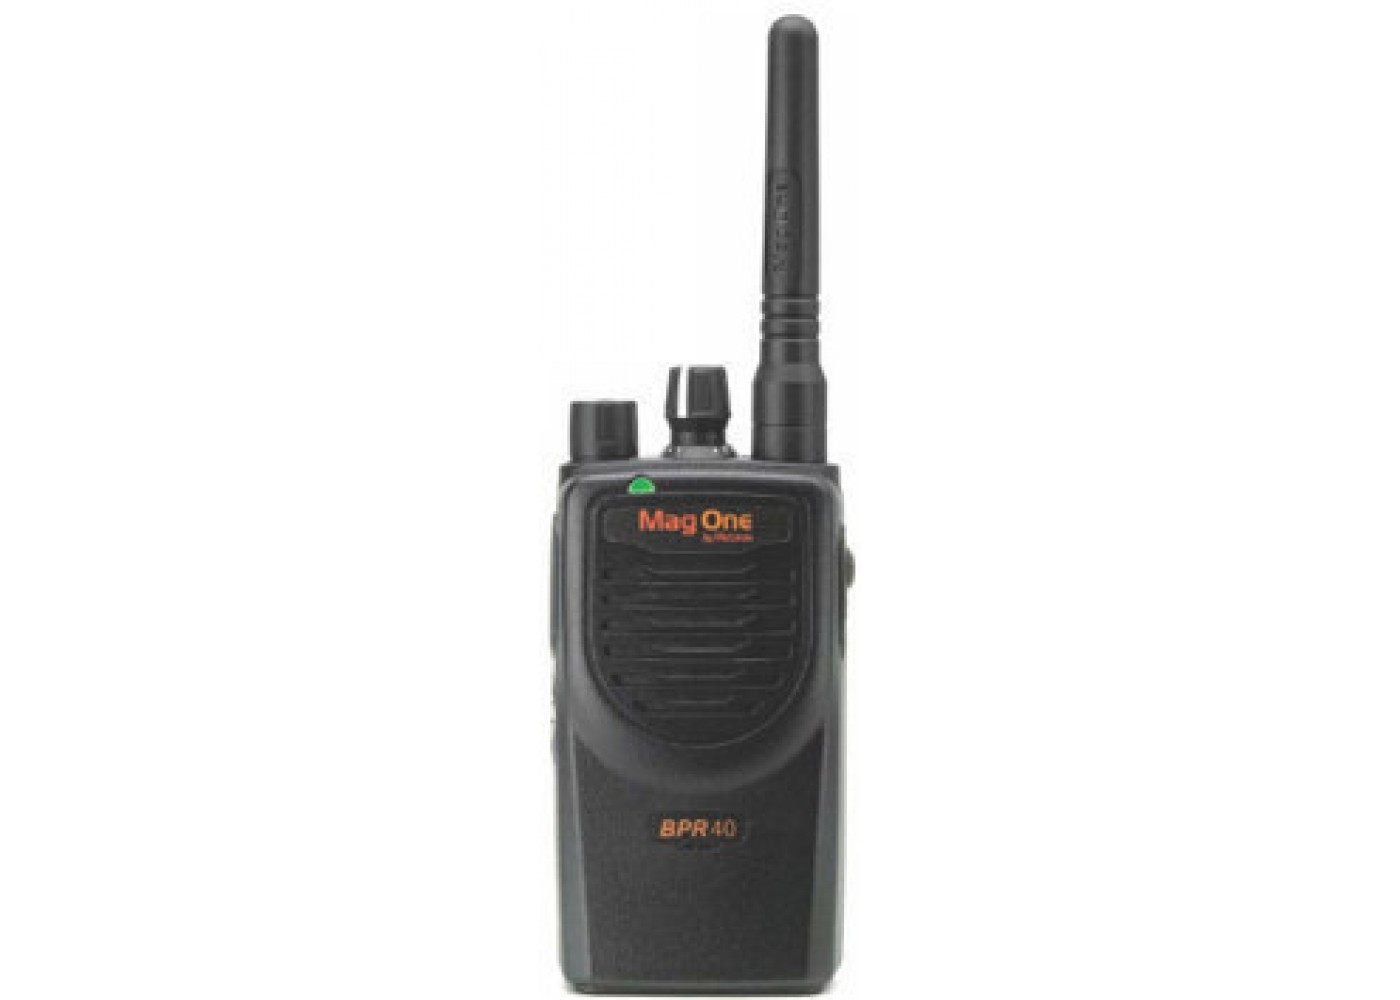 Mag one by motorola bpr40 portable two way radio.